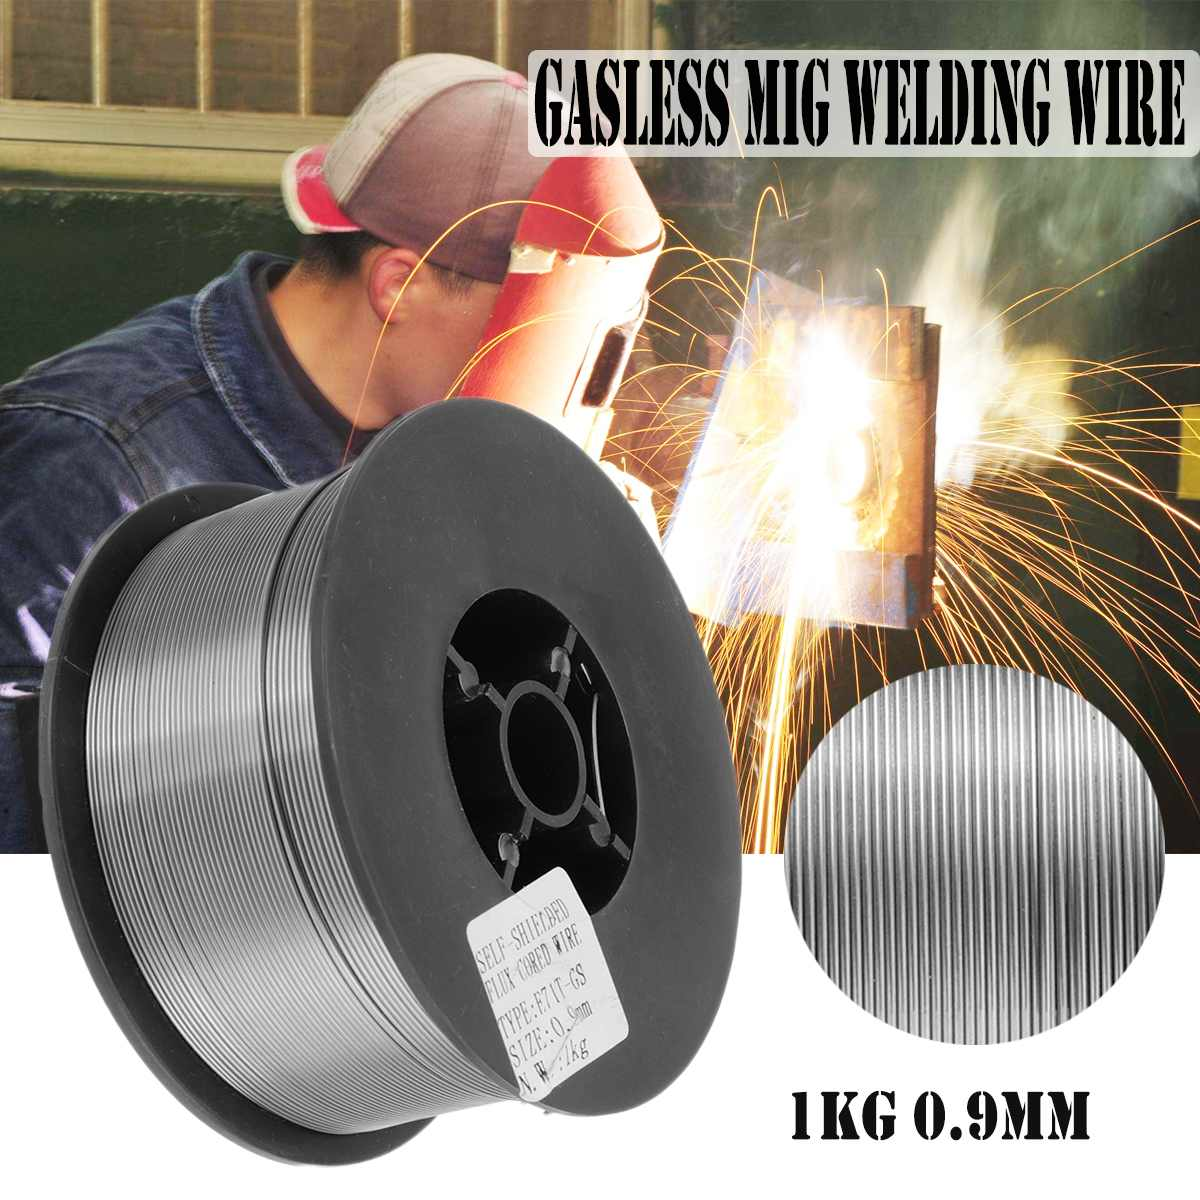 1kg 0.9mm Gasless Mig Welding Wire E71T-GS / E71T-11 Flux Cored Wire  for Welding Machine Accessoies1kg 0.9mm Gasless Mig Welding Wire E71T-GS / E71T-11 Flux Cored Wire  for Welding Machine Accessoies